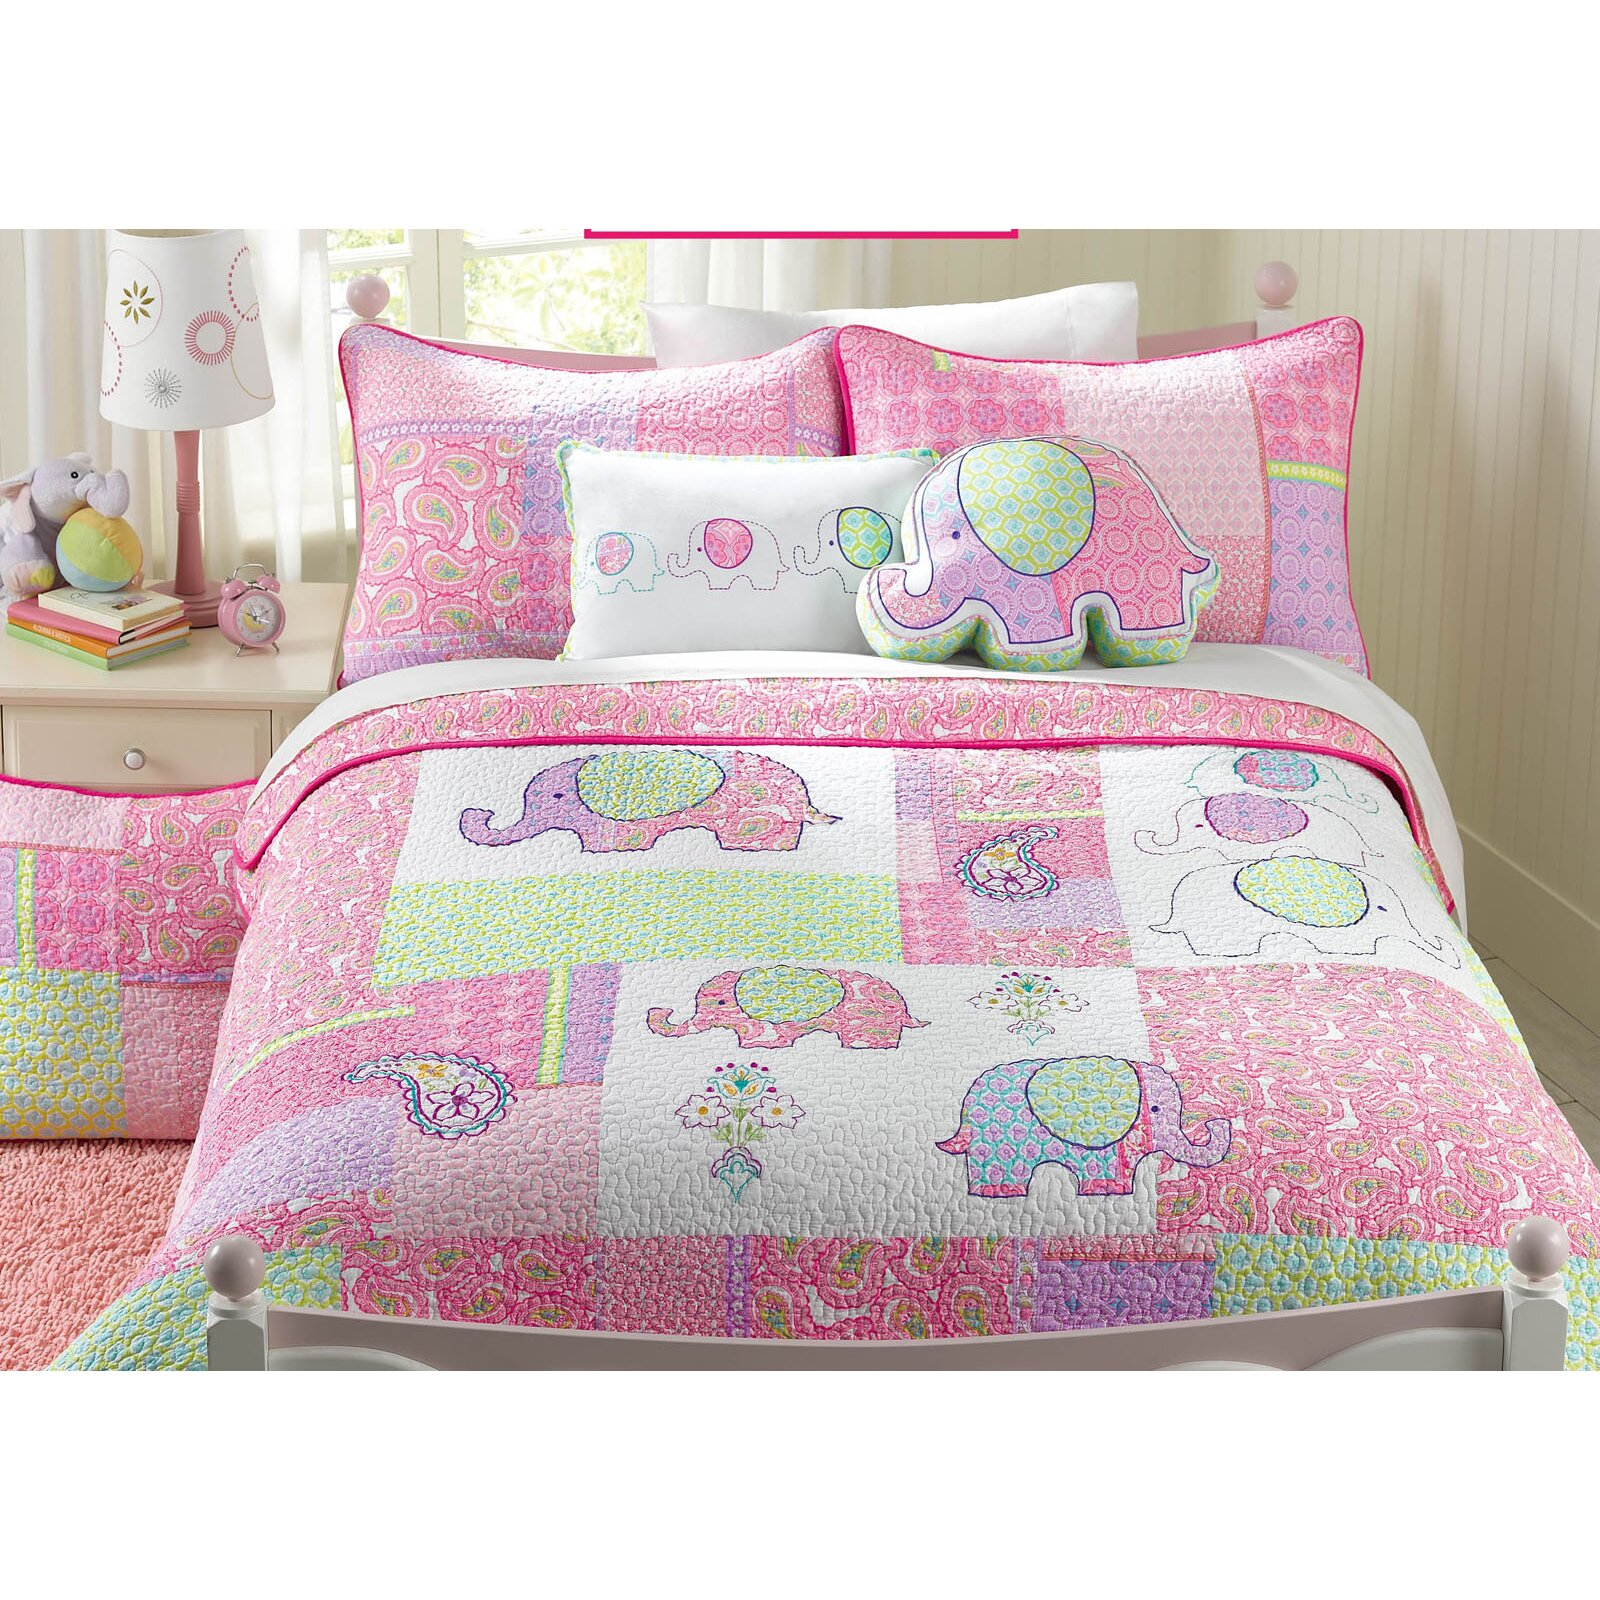 Harriet Bee Rollins 3 Piece Crib Bedding Set: Harriet Bee Carmela 100% Cotton Reversible Quilt Set